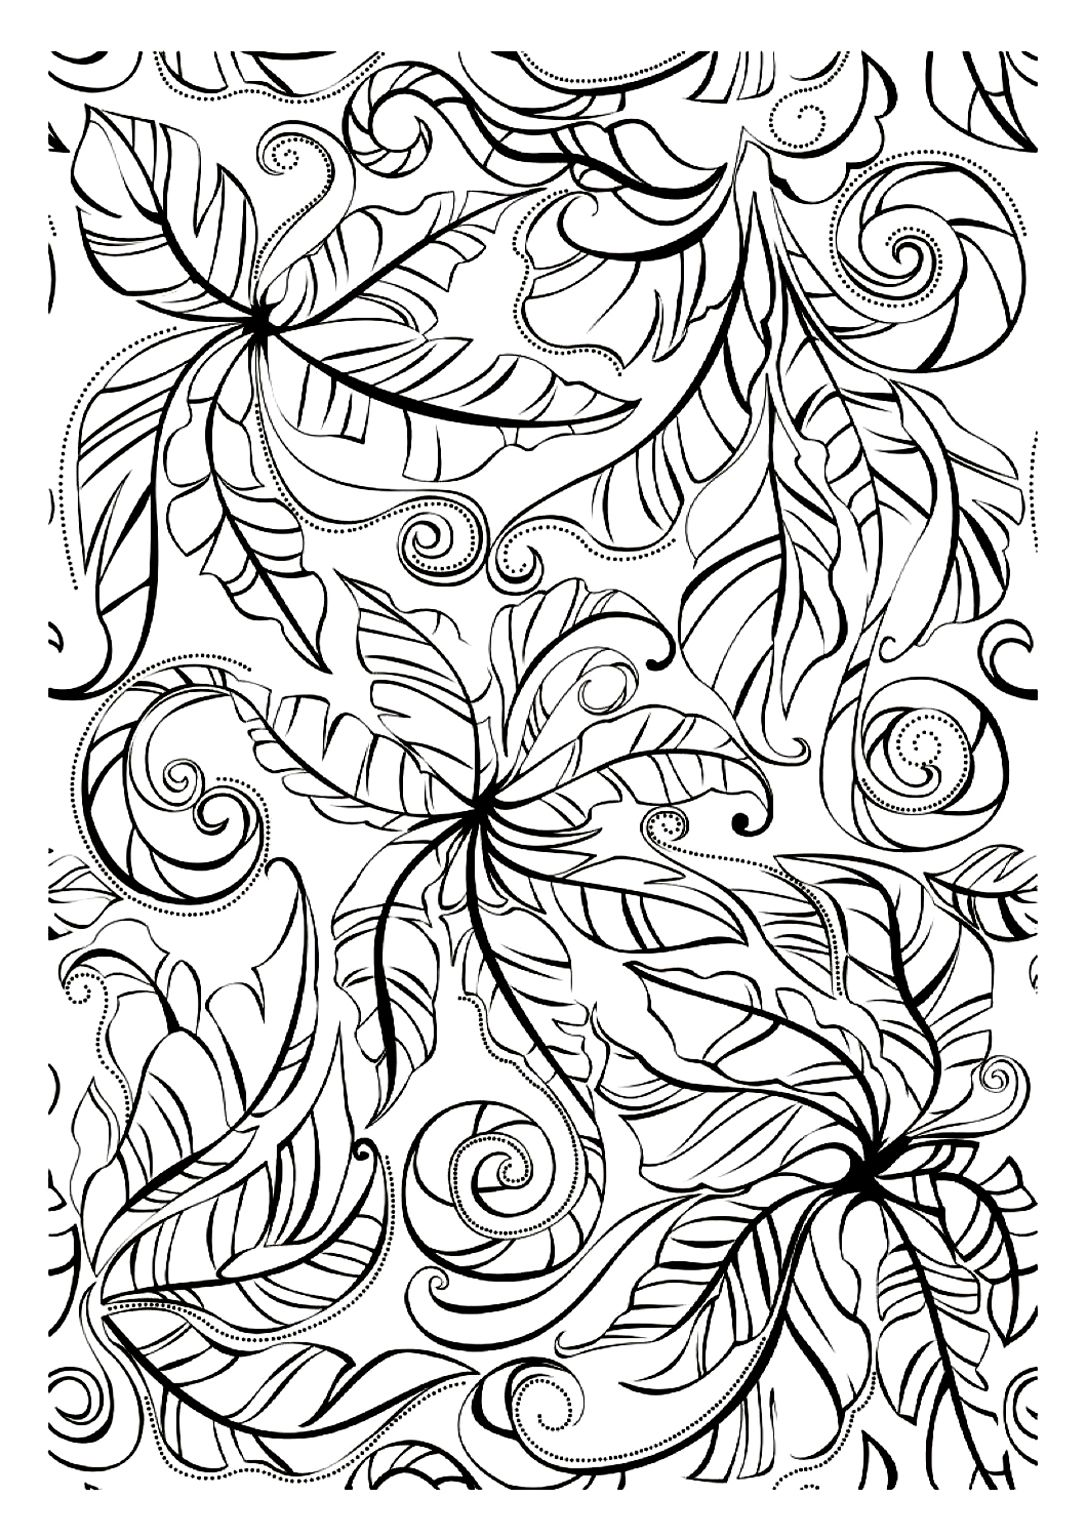 Free Coloring Page Adult Leaves A Disturbing Drawing Color It Ant Will Be For You To Choose What Its Represented